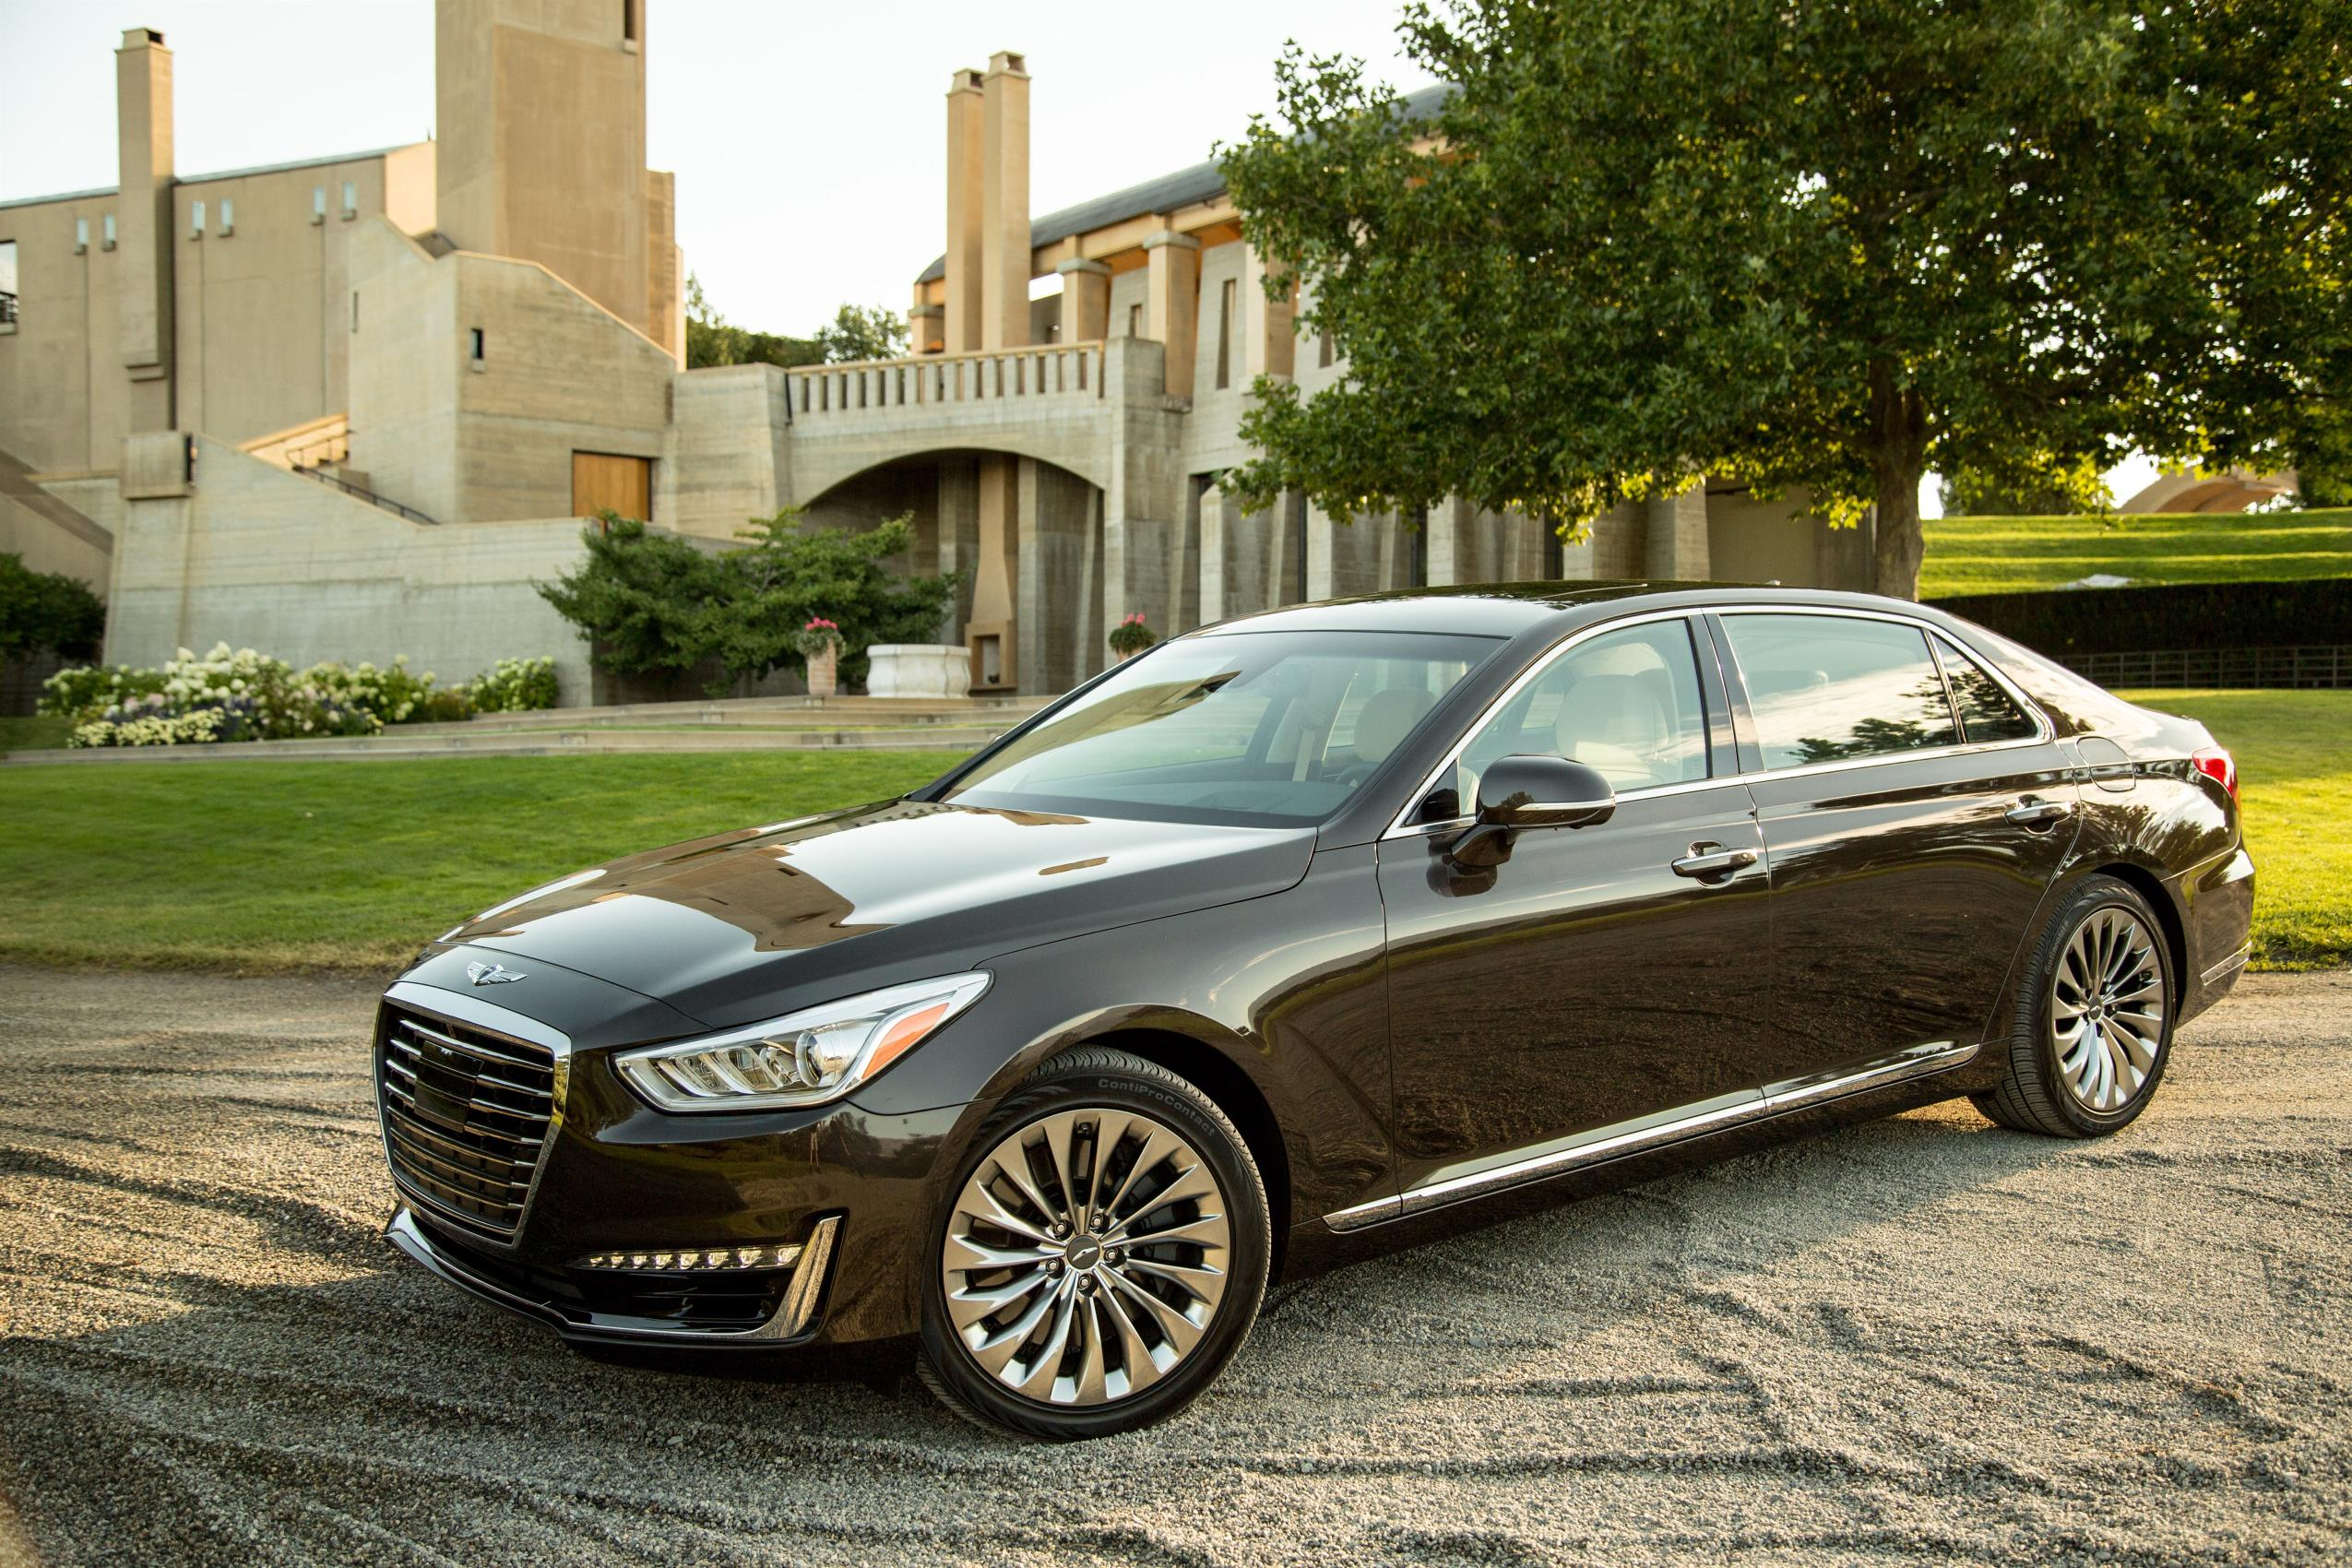 genesis g90 us pricing announced starts at 68 100 autoevolution. Black Bedroom Furniture Sets. Home Design Ideas